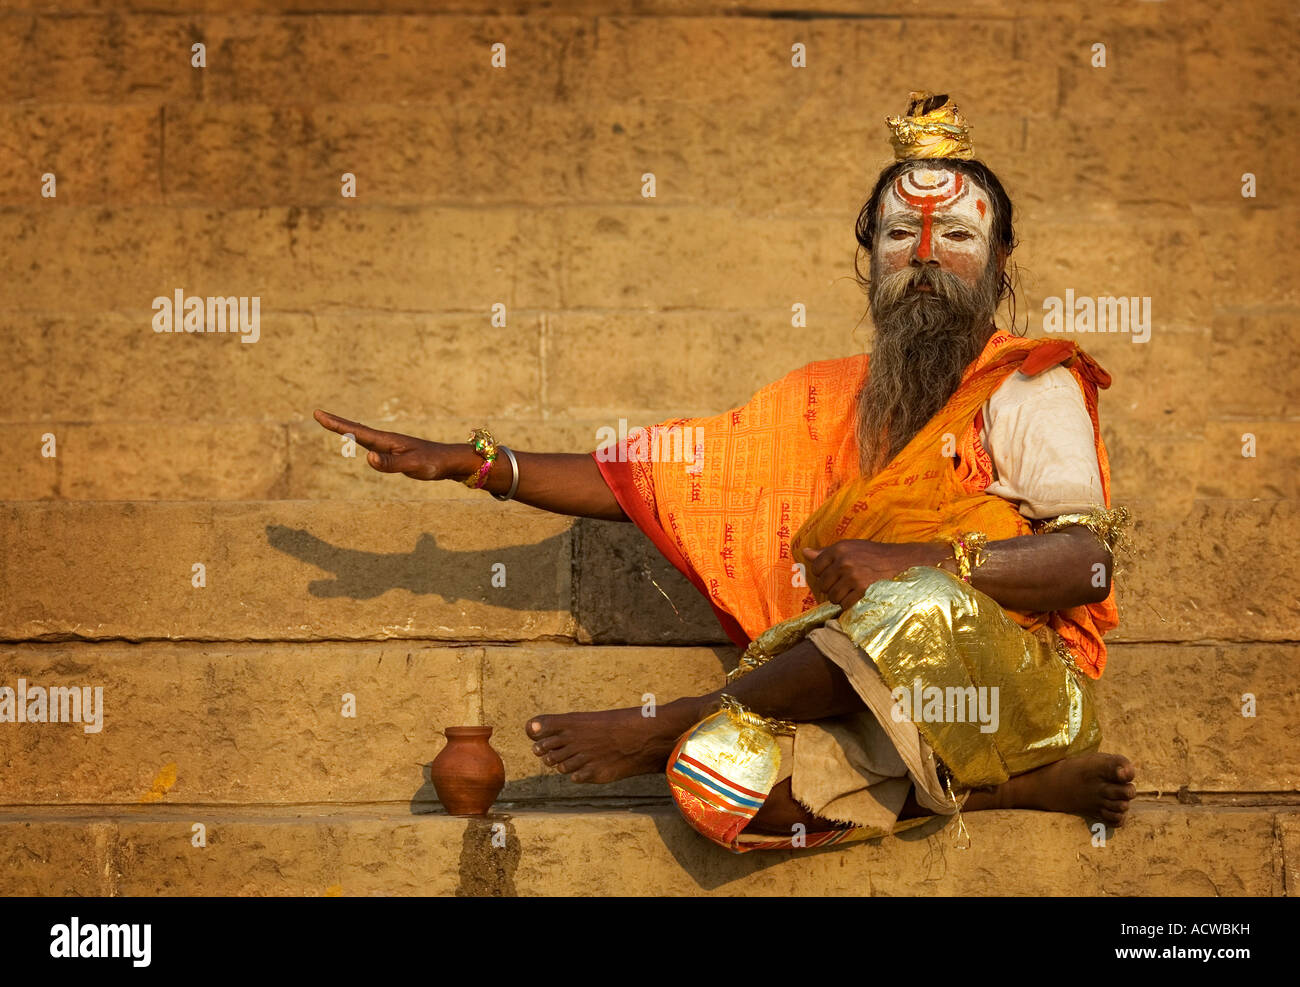 Priest at the stairs in the ghats Varanasi Benares India - Stock Image